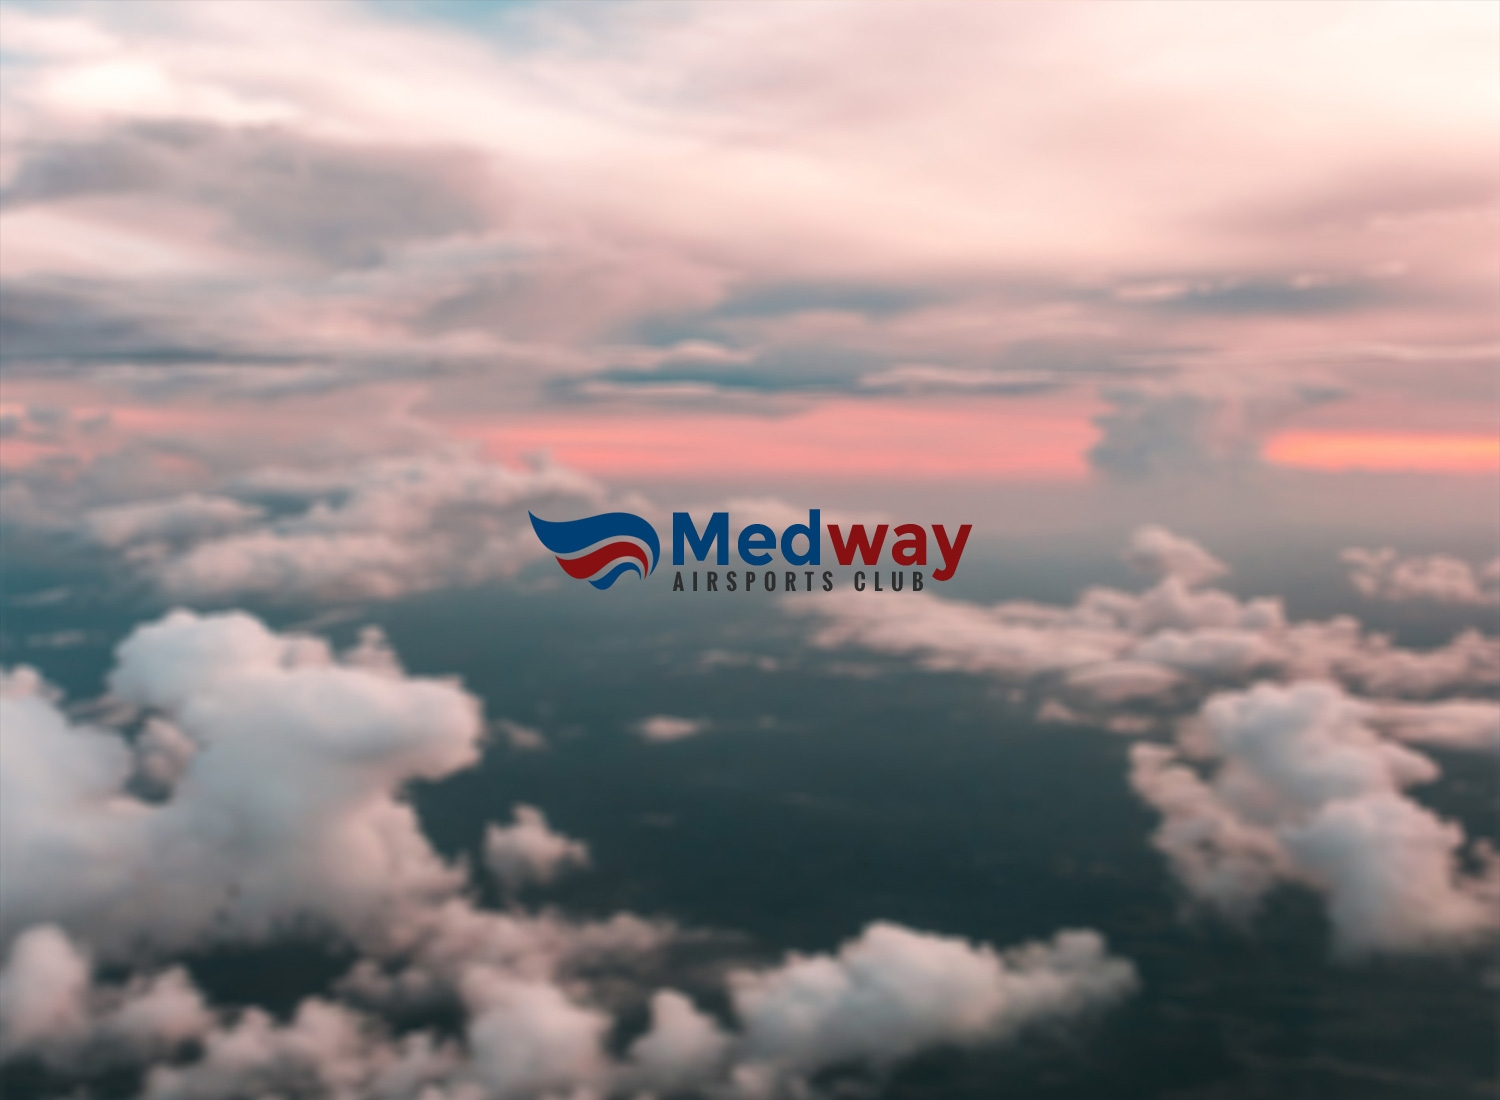 Medway Airsports Club (@medwayairsportsclub) Cover Image